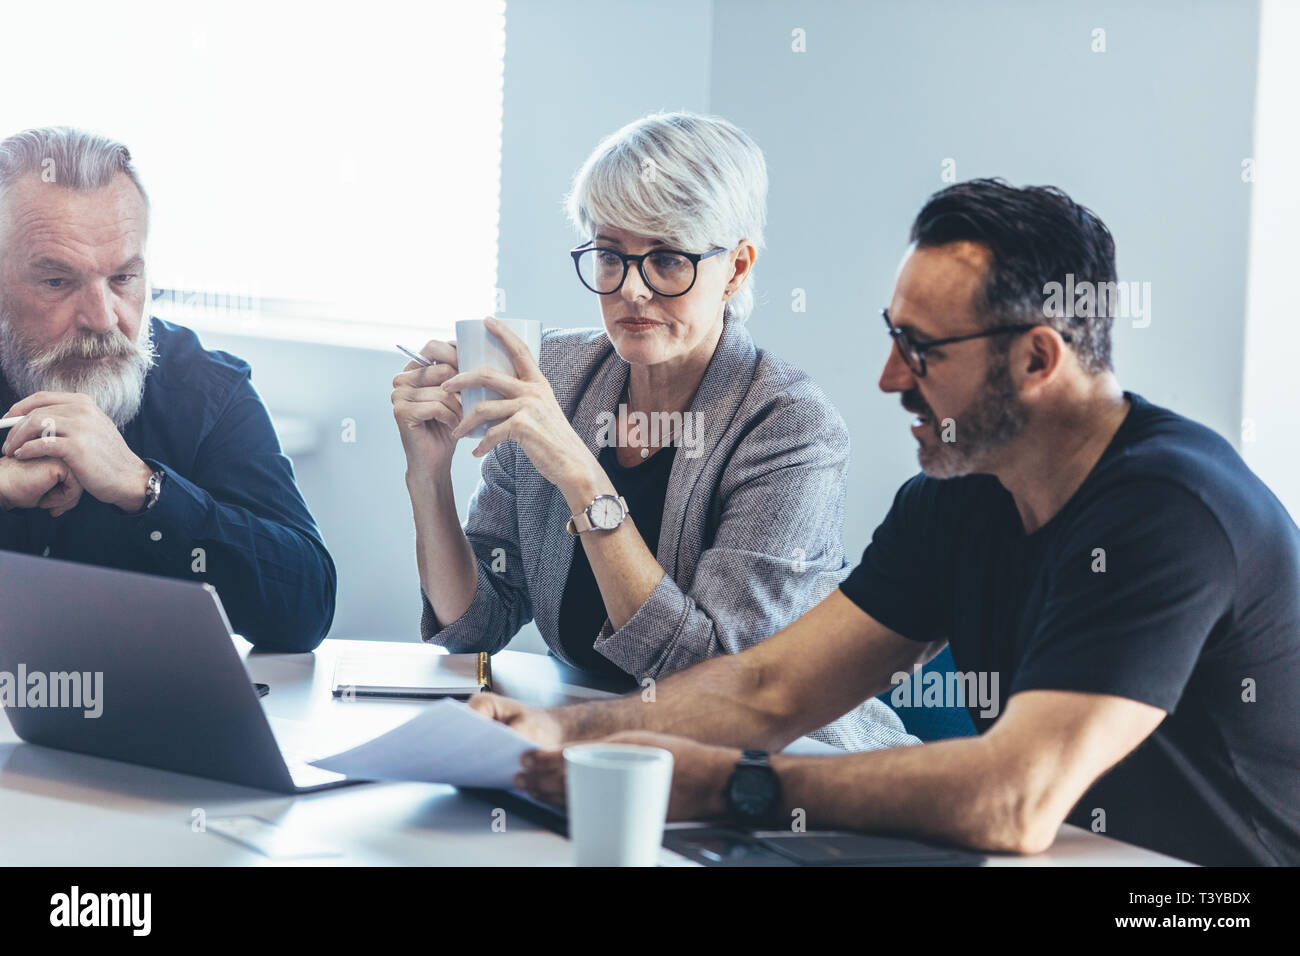 Business people talking while sitting at table in office. Businessman giving demonstrating on laptop to colleagues. Stock Photo